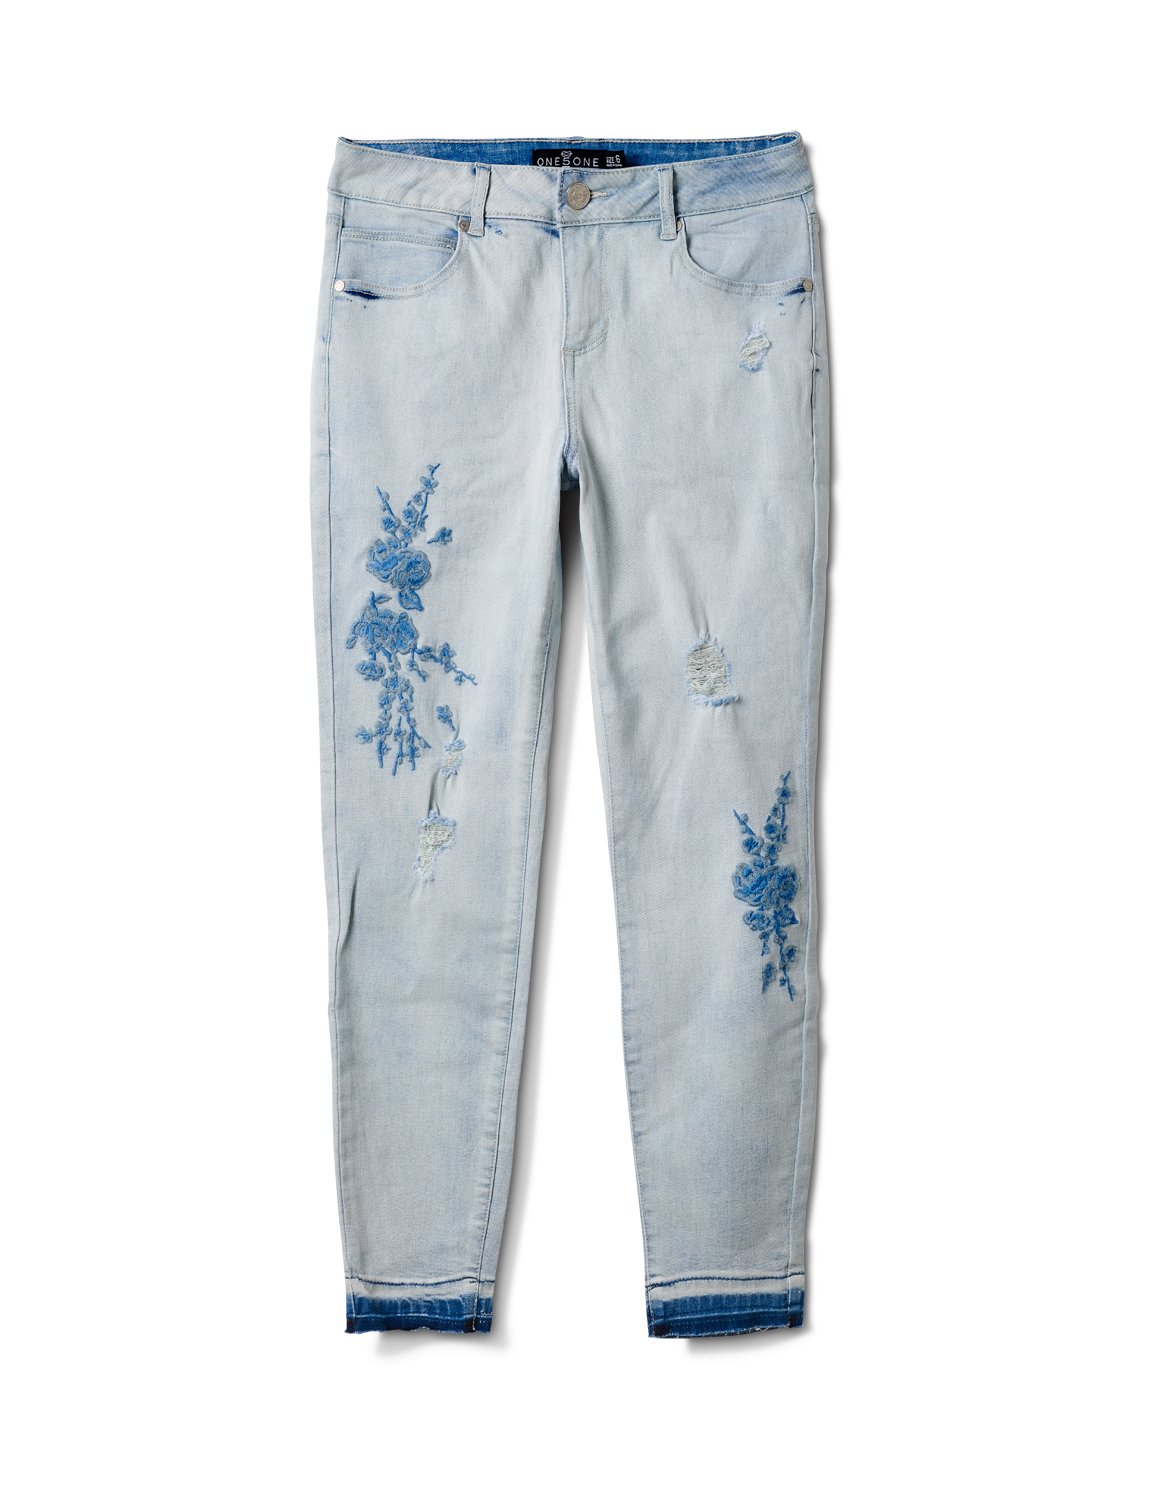 Mid Rise Skinny Jean With Embroidery On The Leg -Bleach - Front